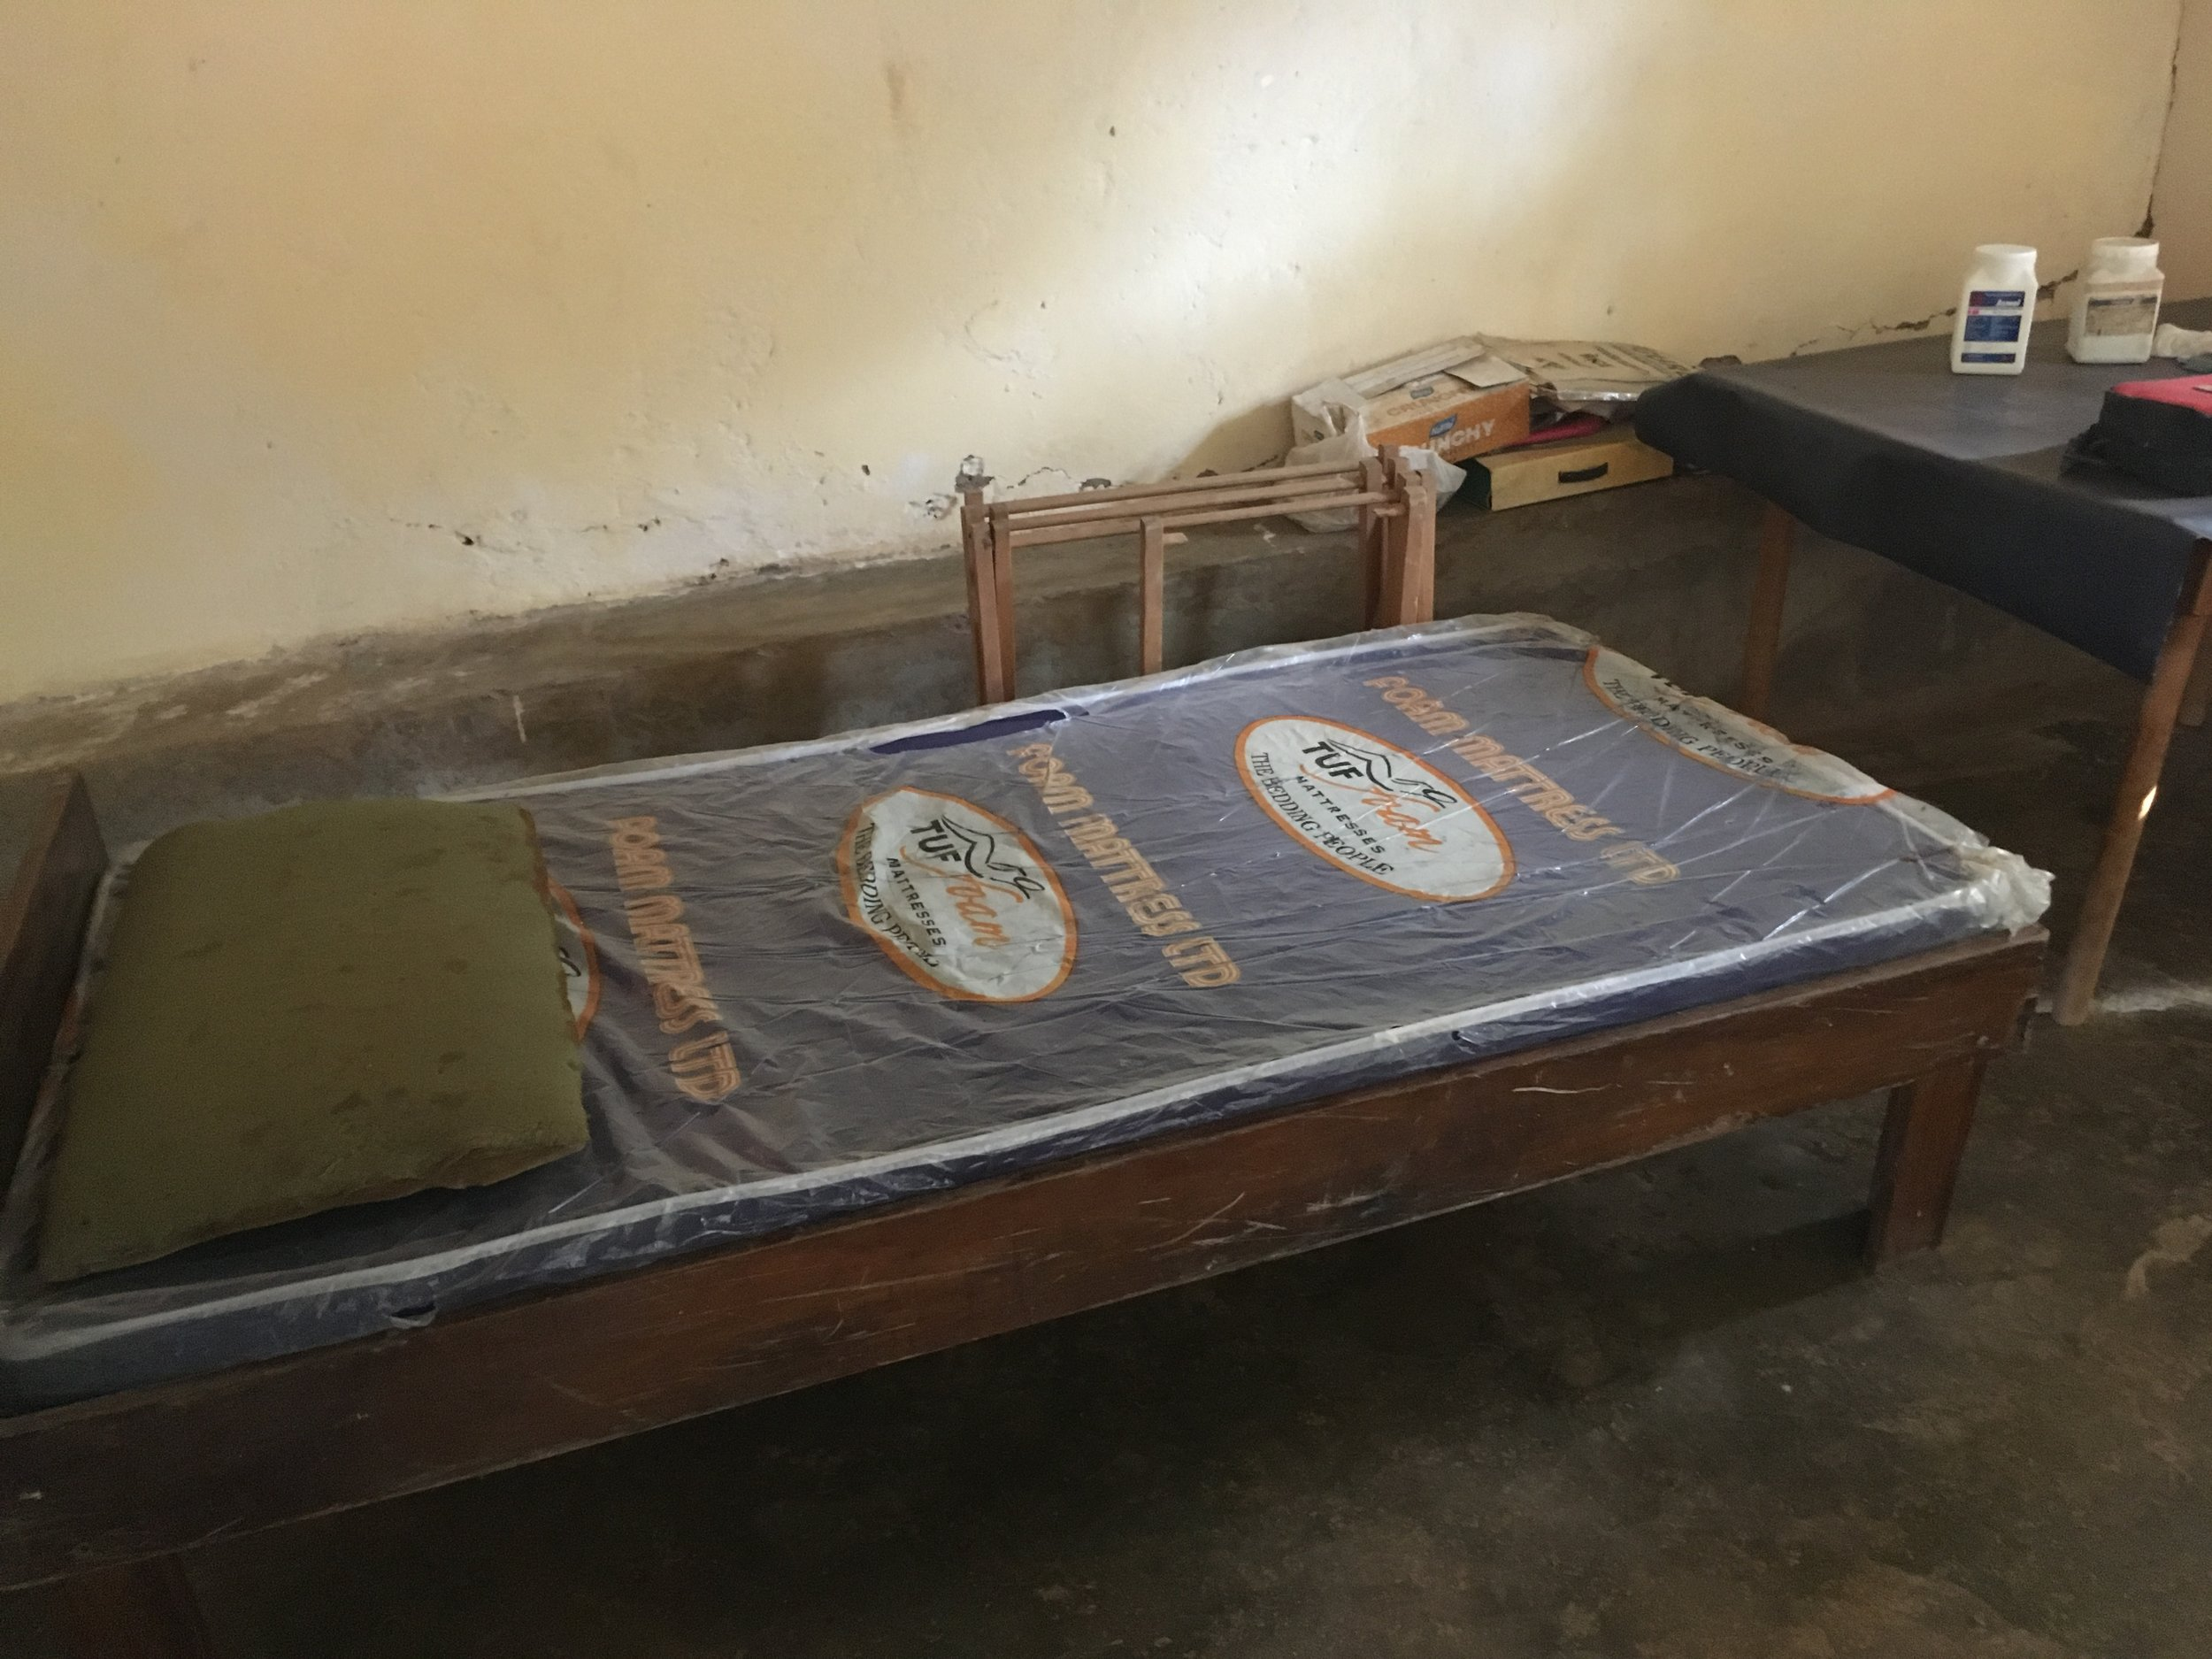 The medical room where Jesus sleeps on days that he is unwell currently.